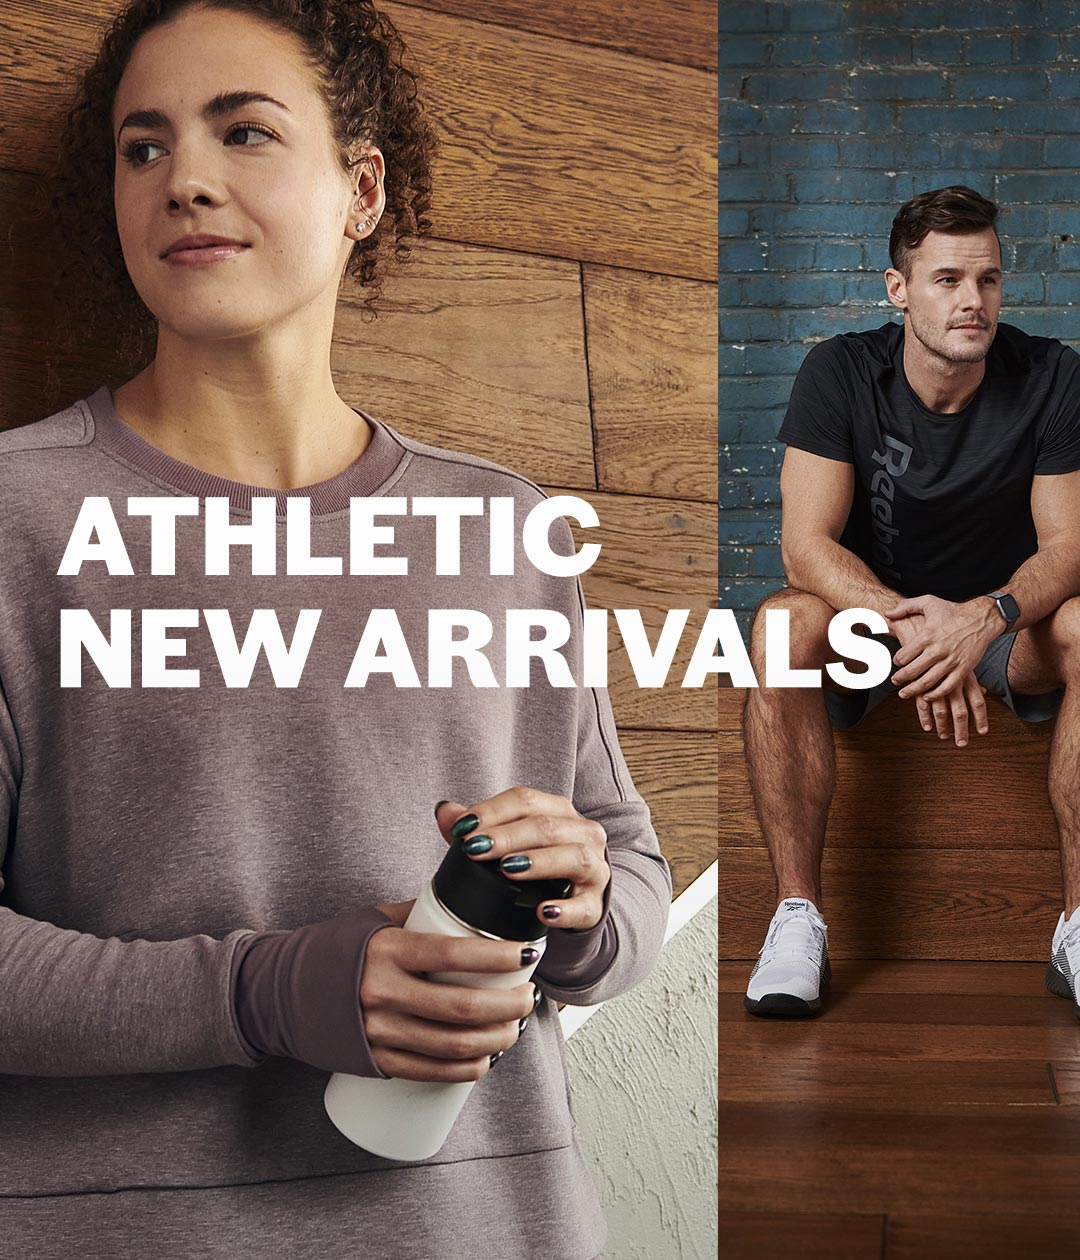 Athletic new arrivals